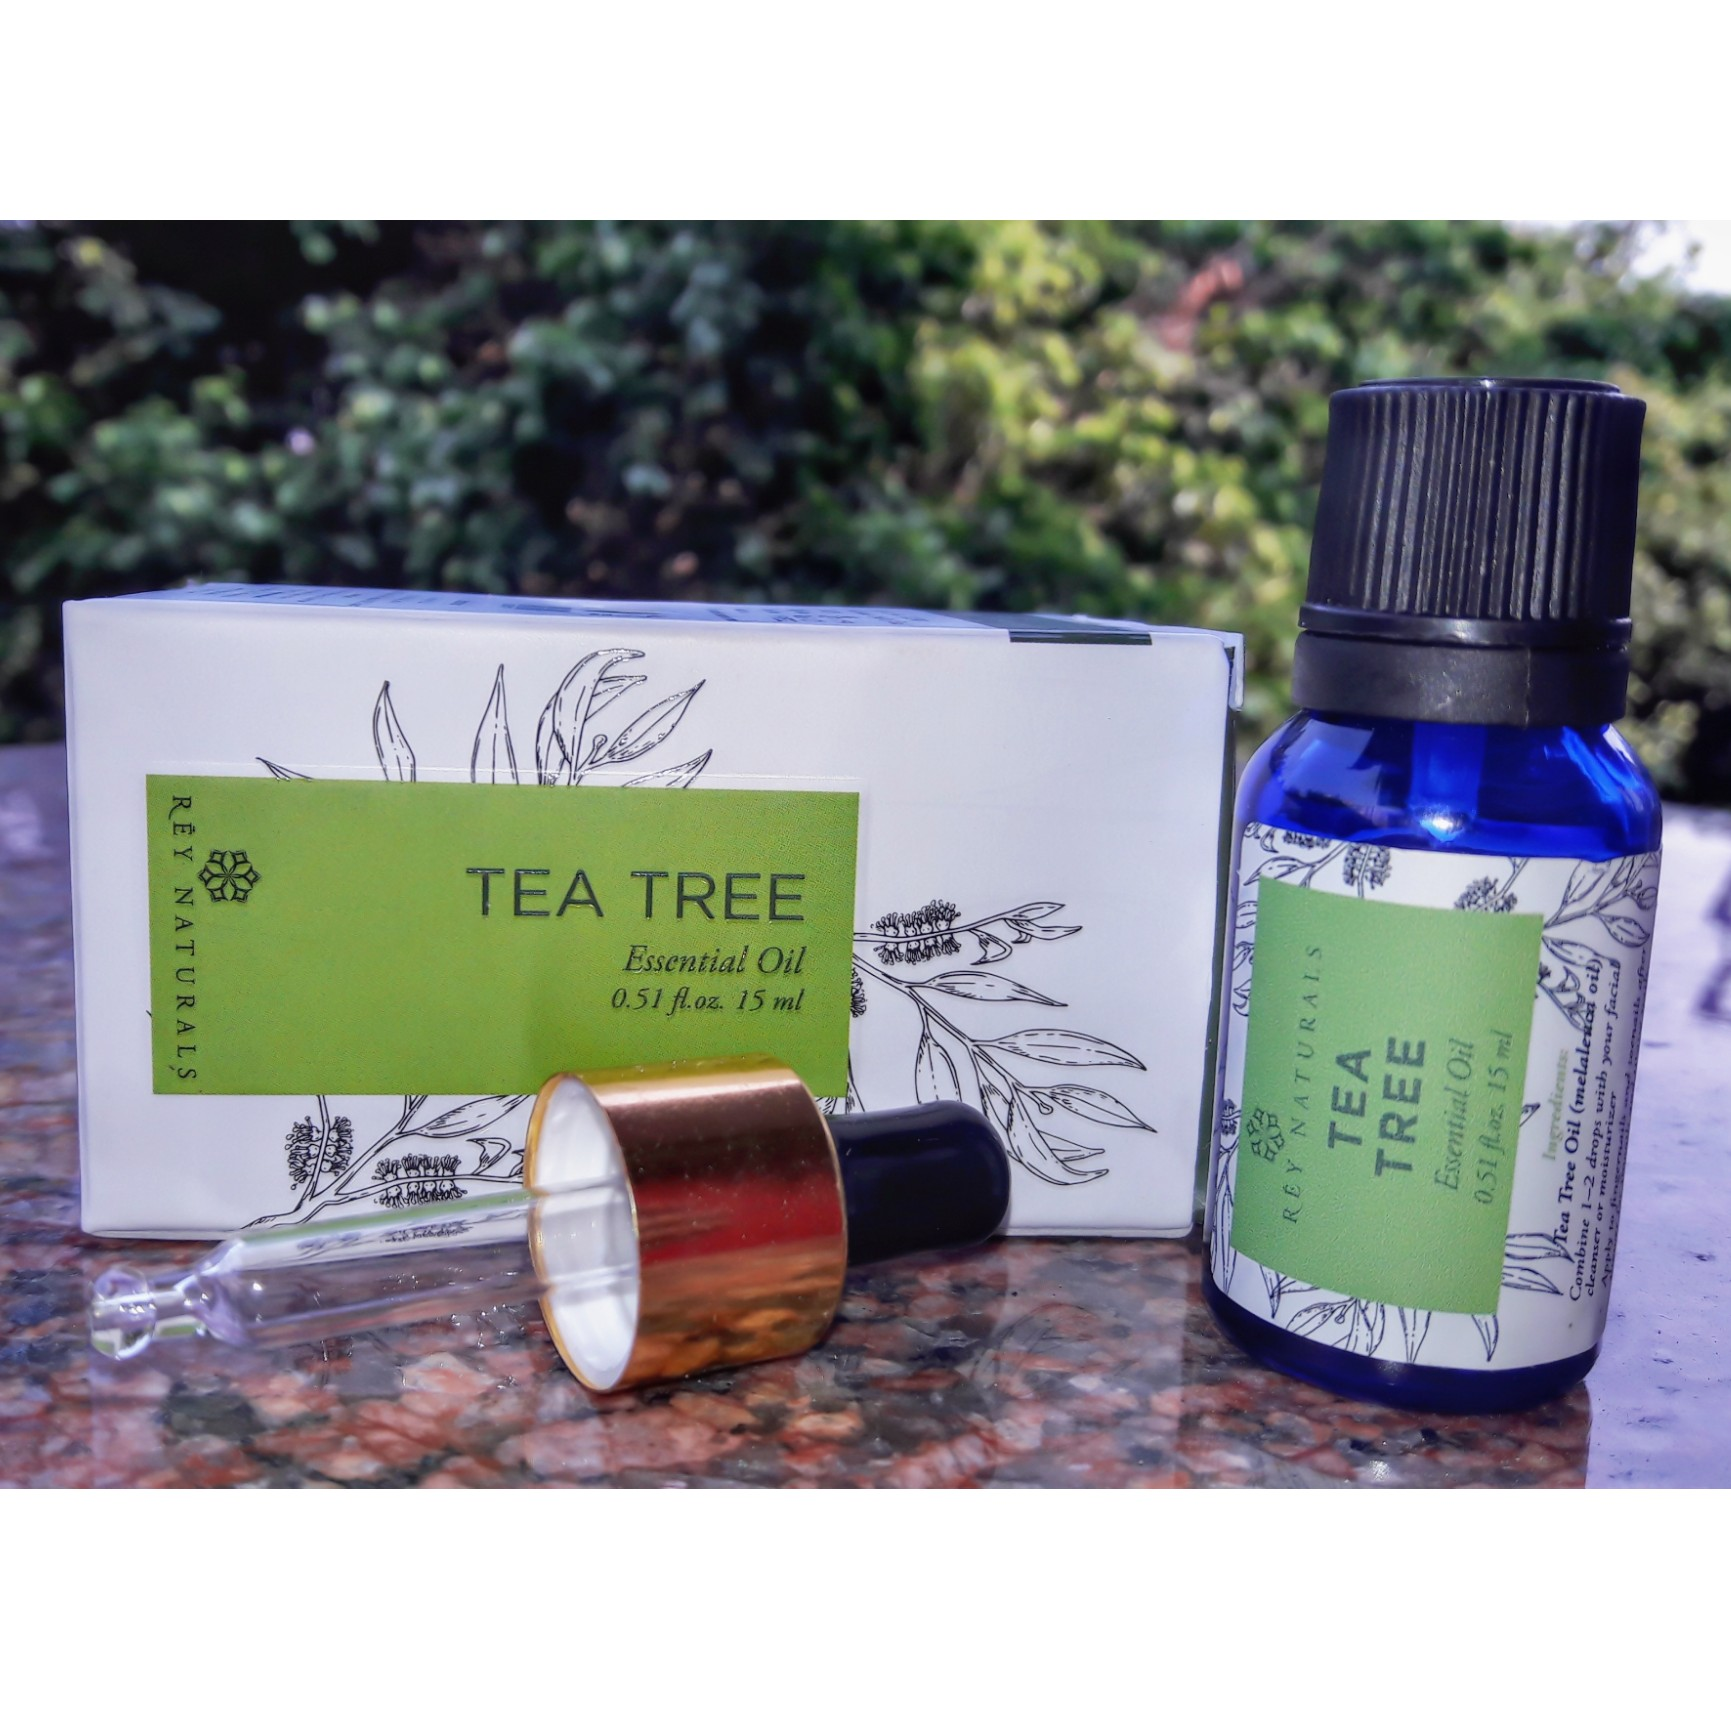 Rey Naturals Tea Tree Essential Oil-Best for acne scars-By sassy_soul_25-1